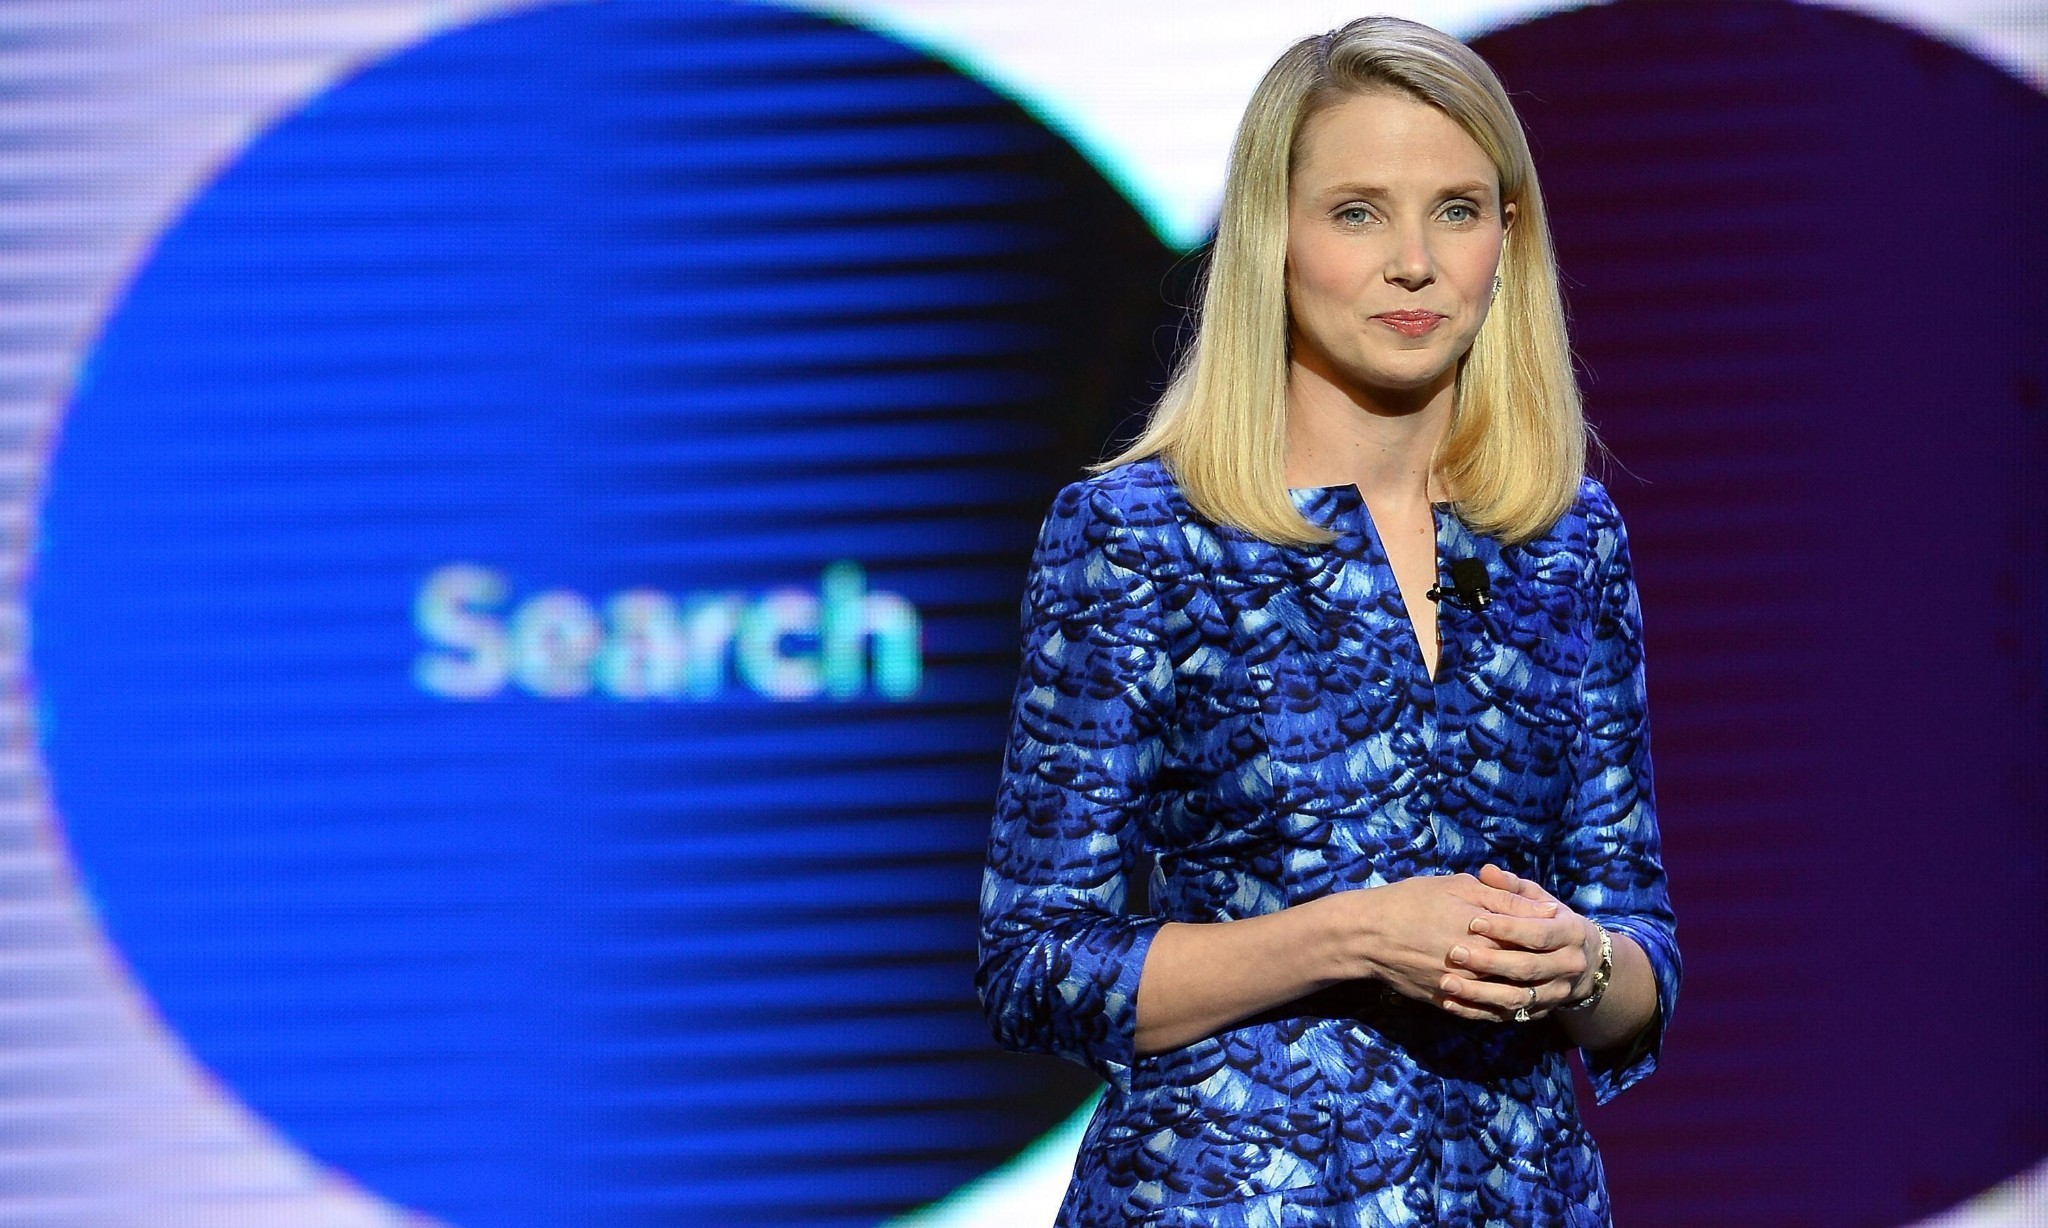 What's the future for Yahoo CEO Marissa Mayer?